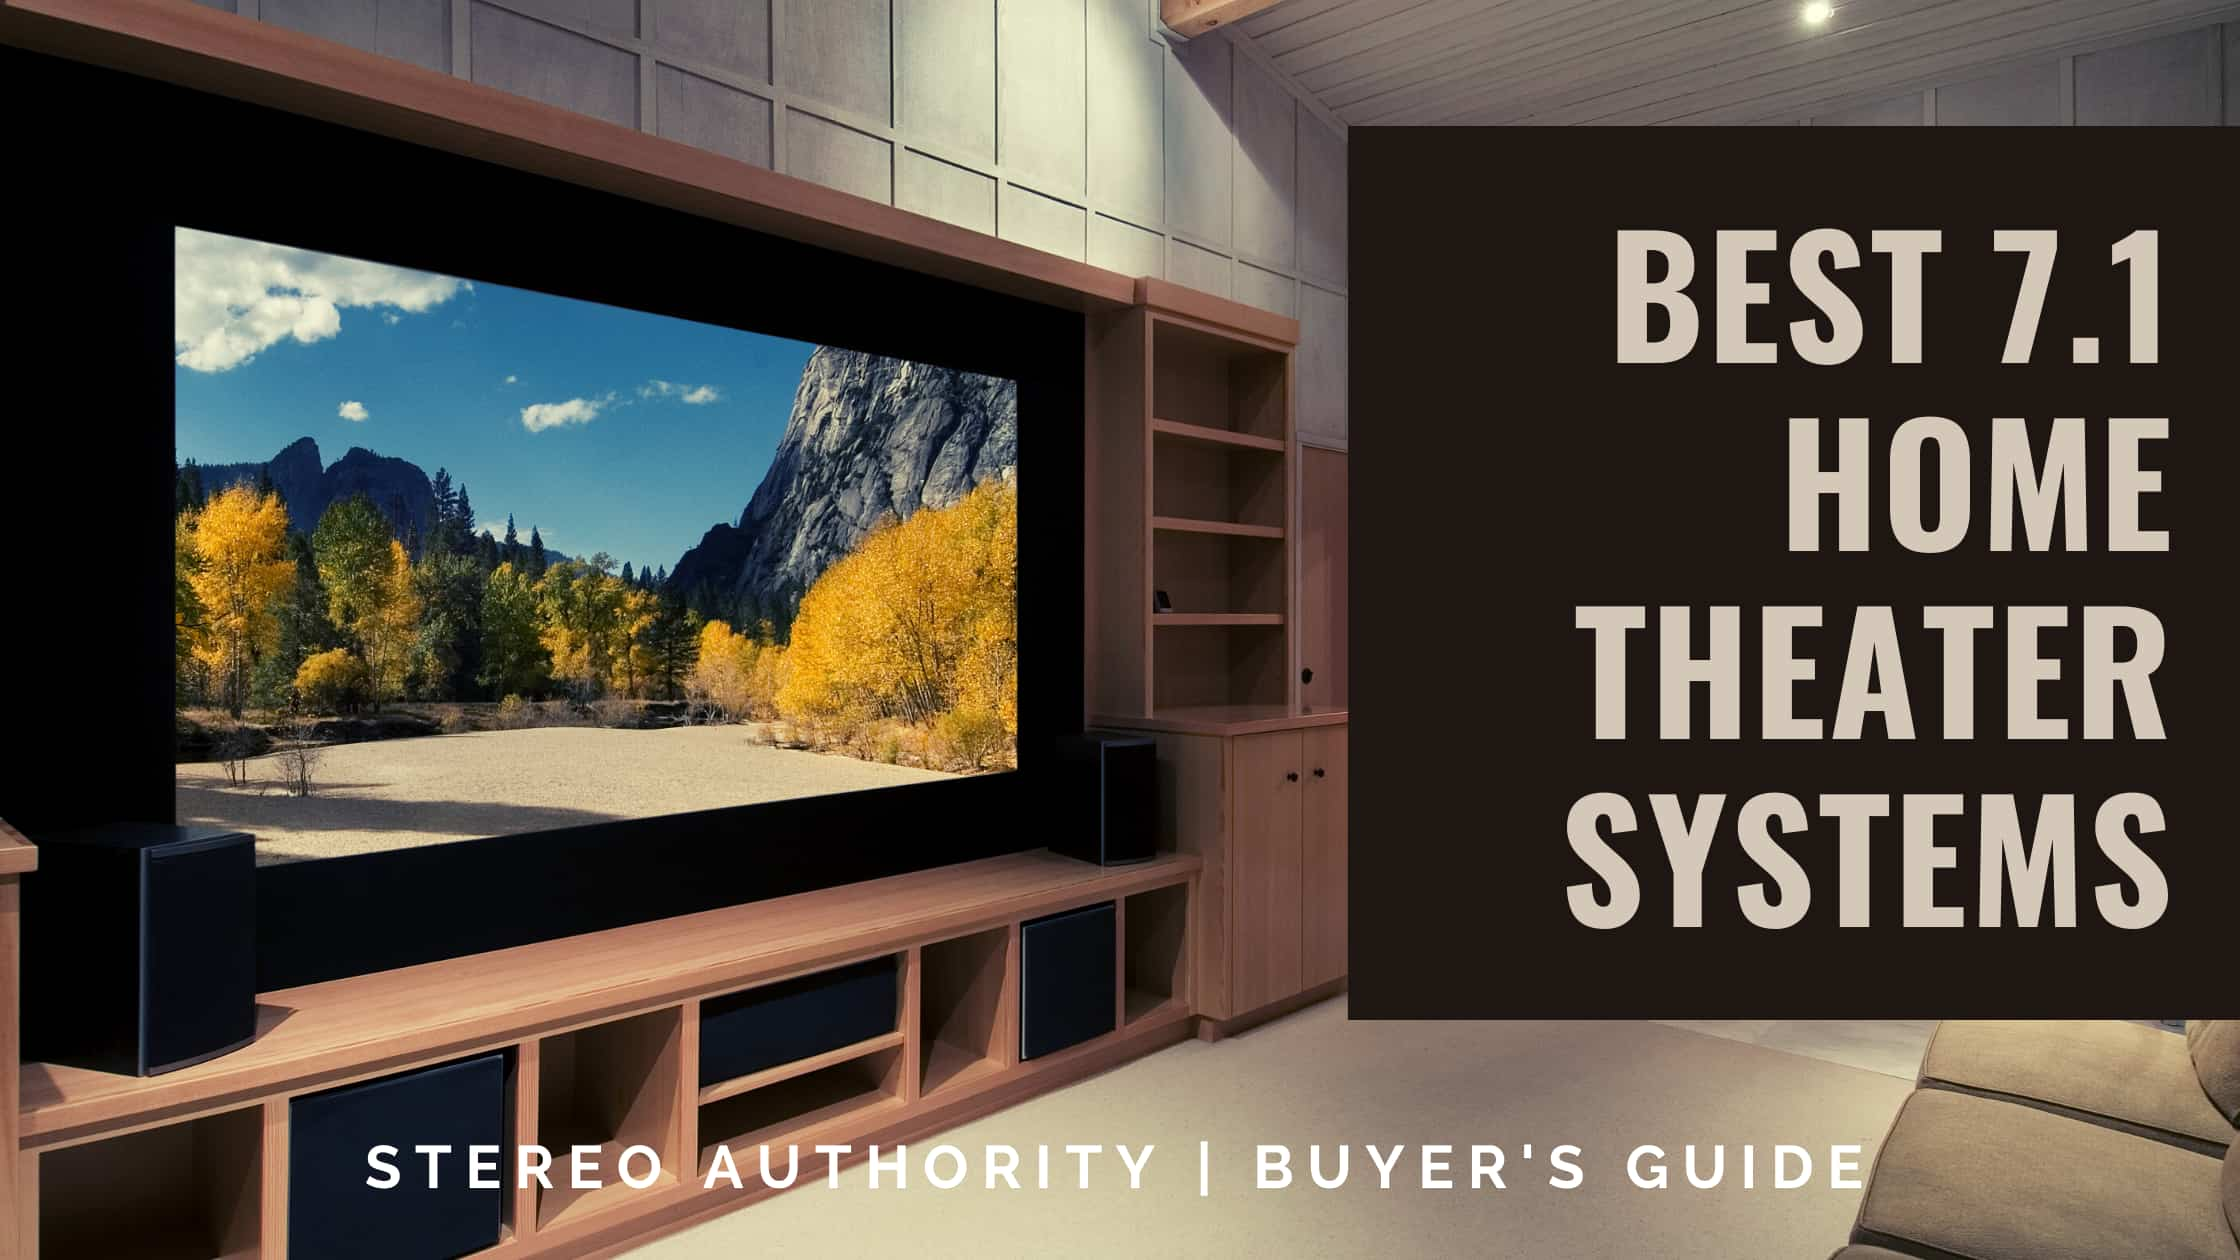 Best 7.1 Home Theater System buyer's guide and reviews